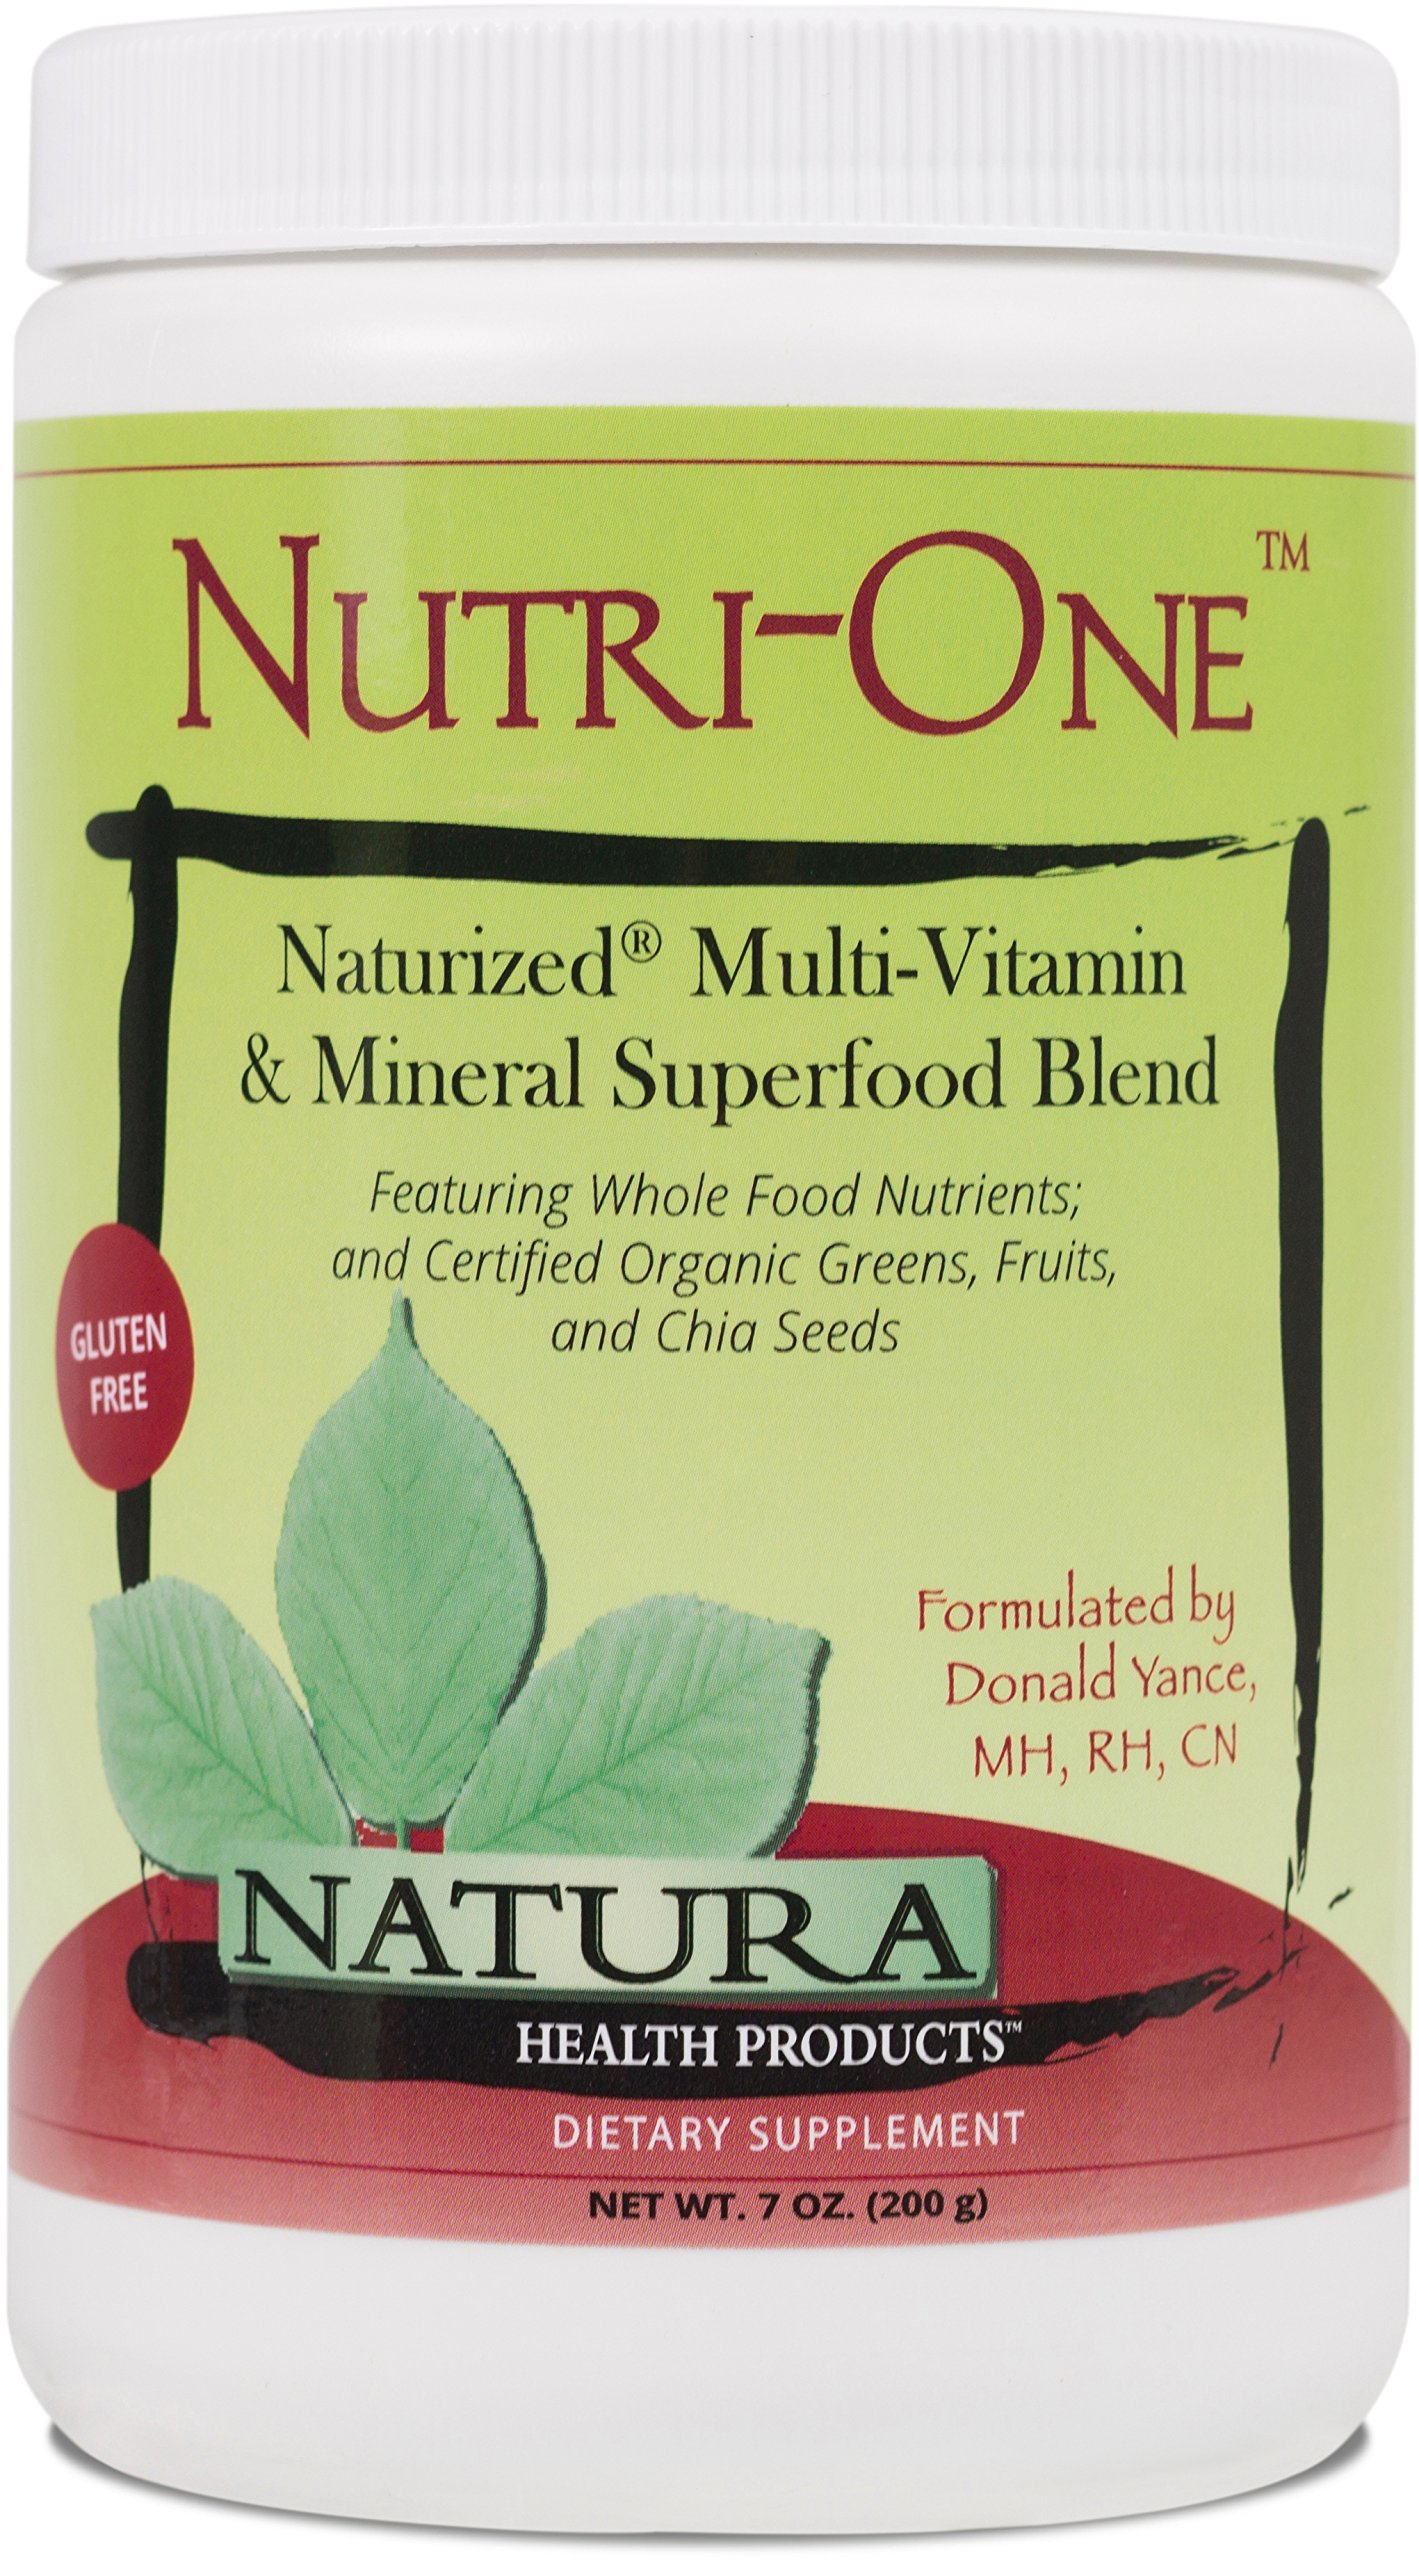 Natura Health Products - Nutri-One -Bioavailable Food-Grown Multi-Vitamin and Mineral Superfood Blend - 200 Grams (7 Ounces) Powder